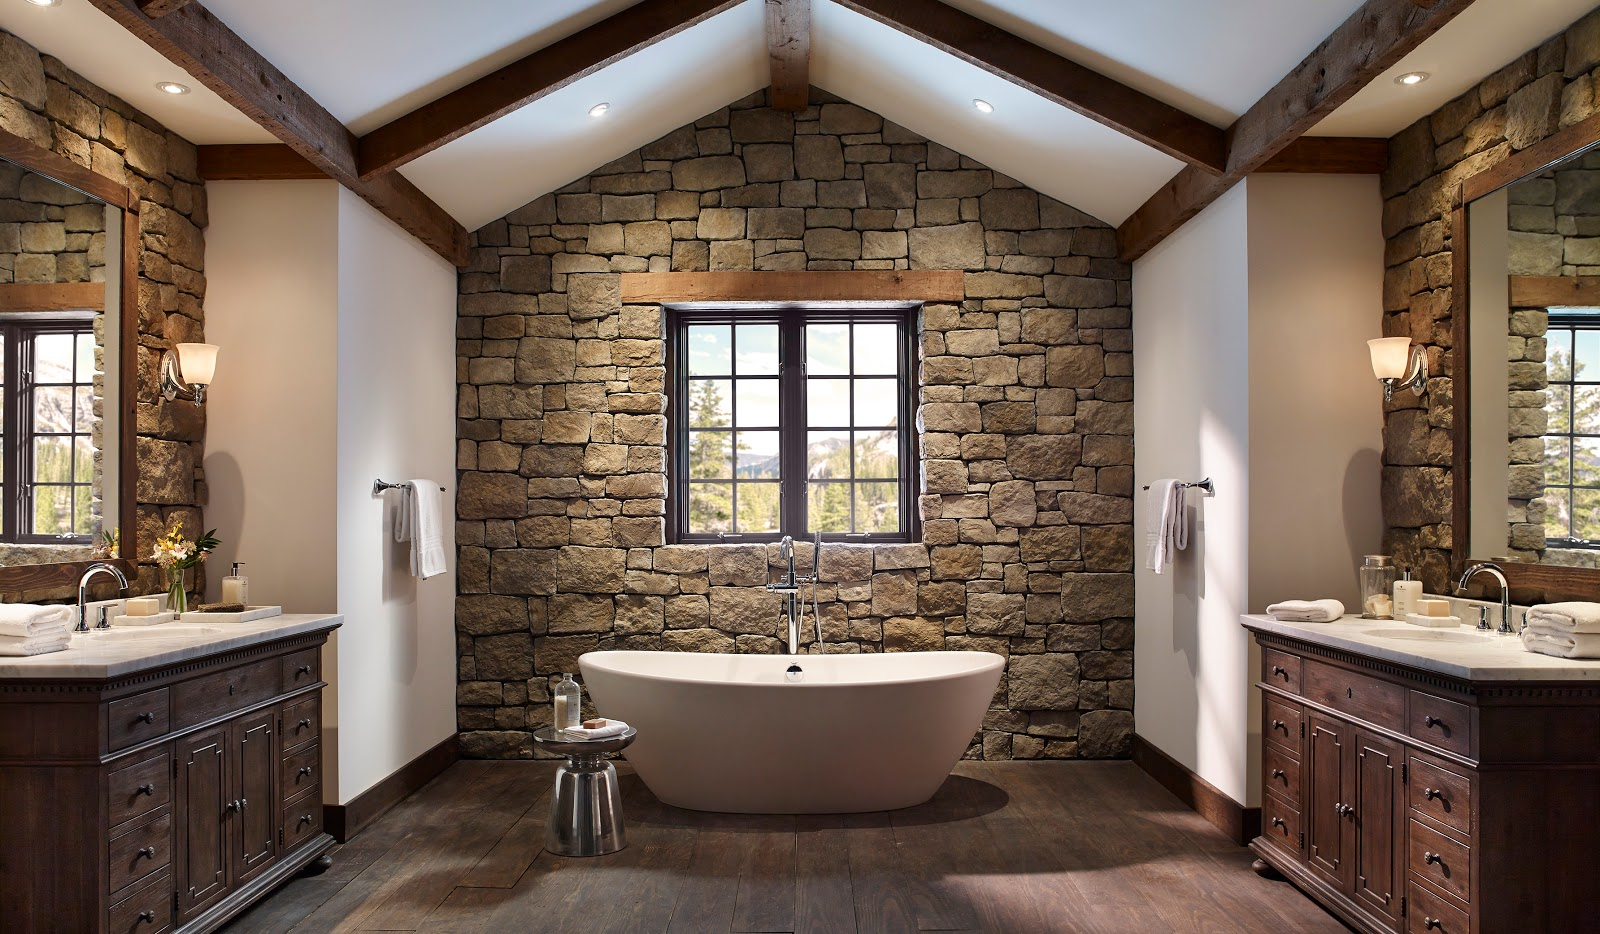 stone bathroom design ideas simple minimalist home design. Black Bedroom Furniture Sets. Home Design Ideas